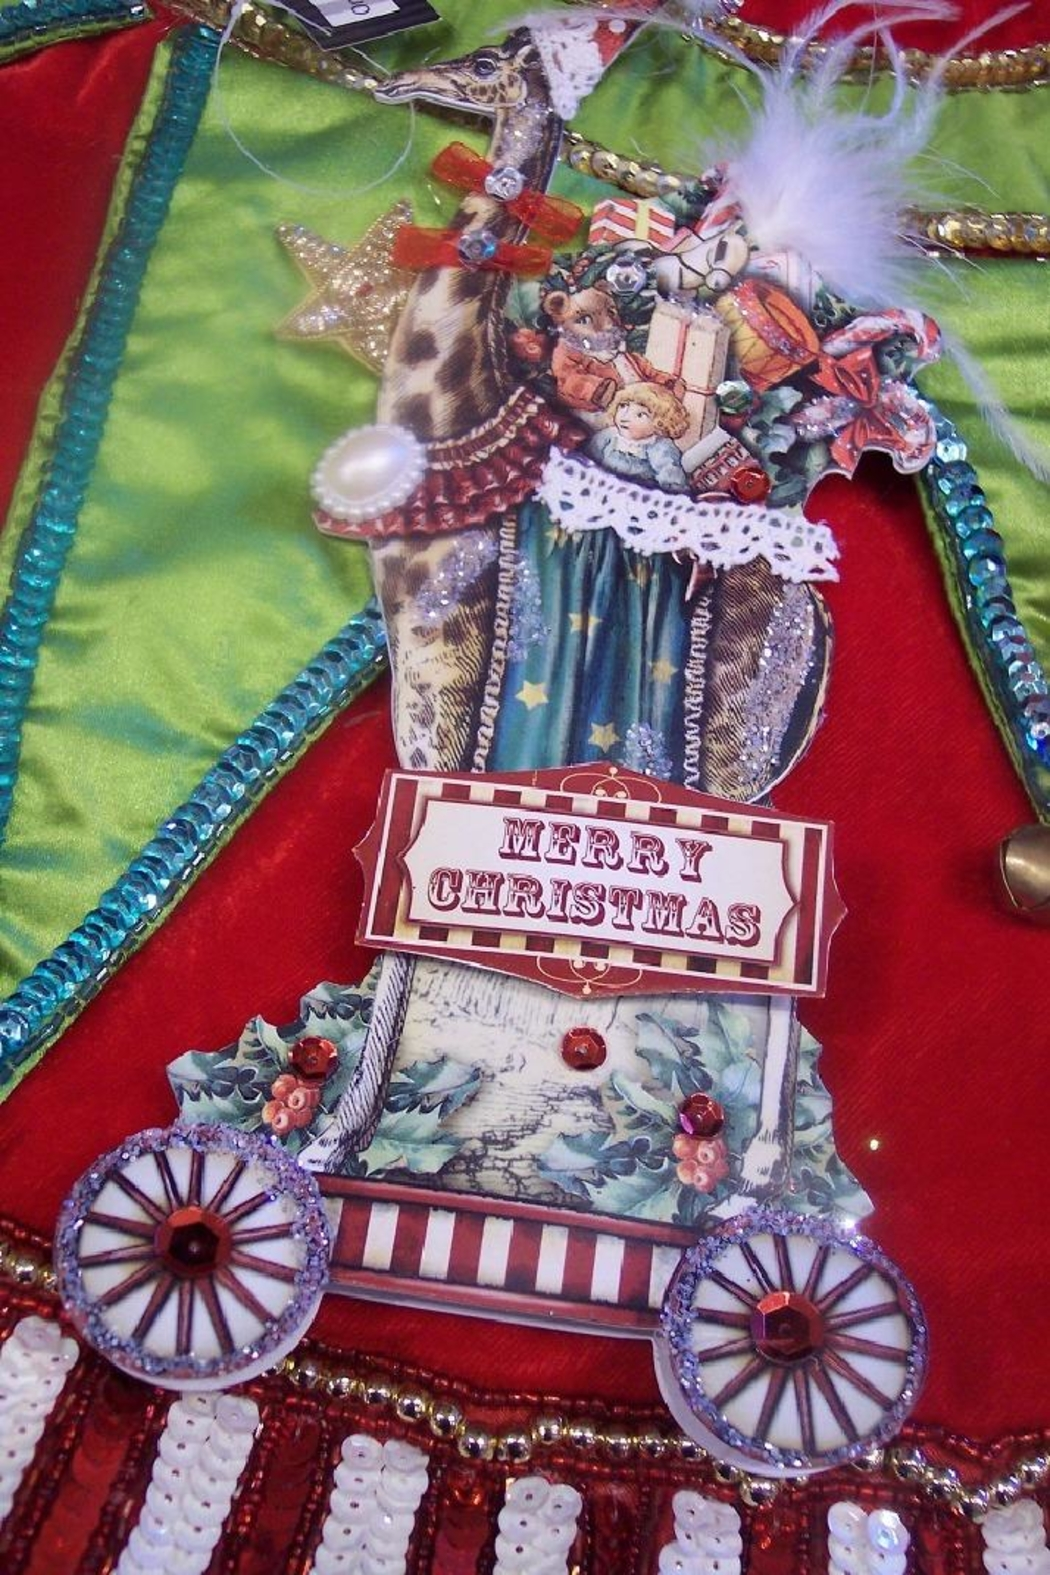 One Hundred 80 Degrees Vintage Circus Themed Ornaments - Front Cropped Image